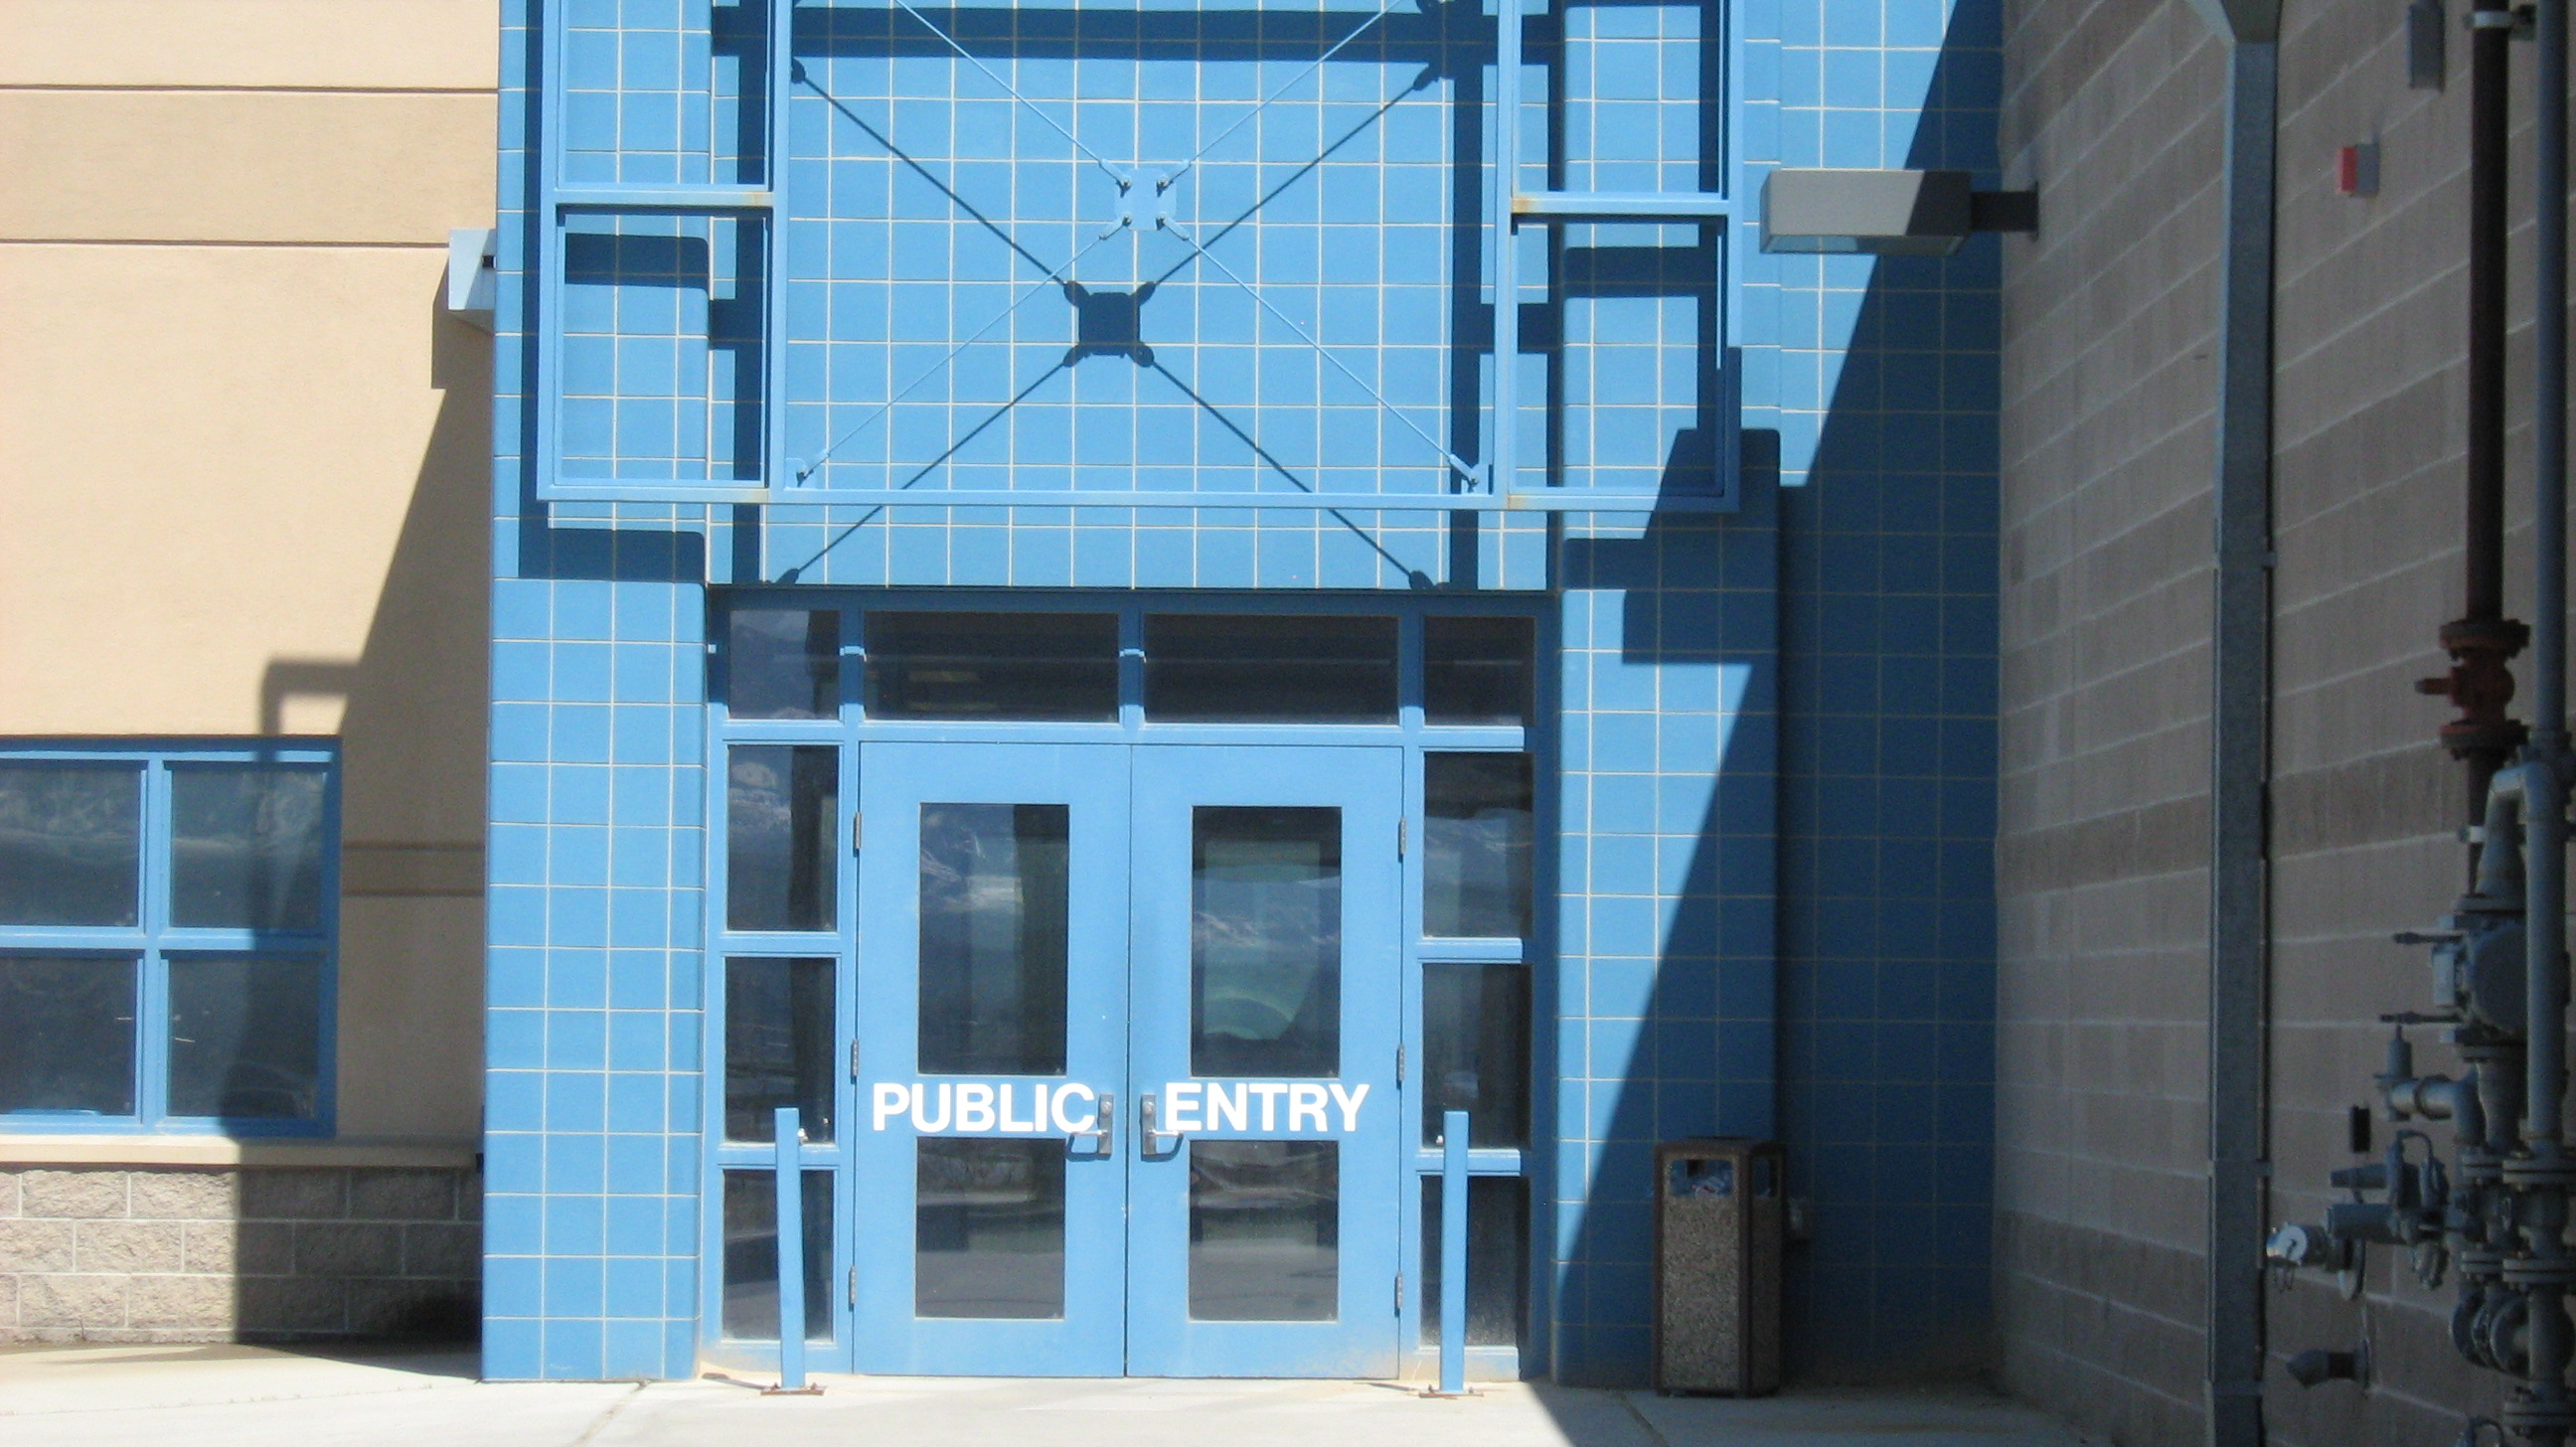 Detention Center Public Entry